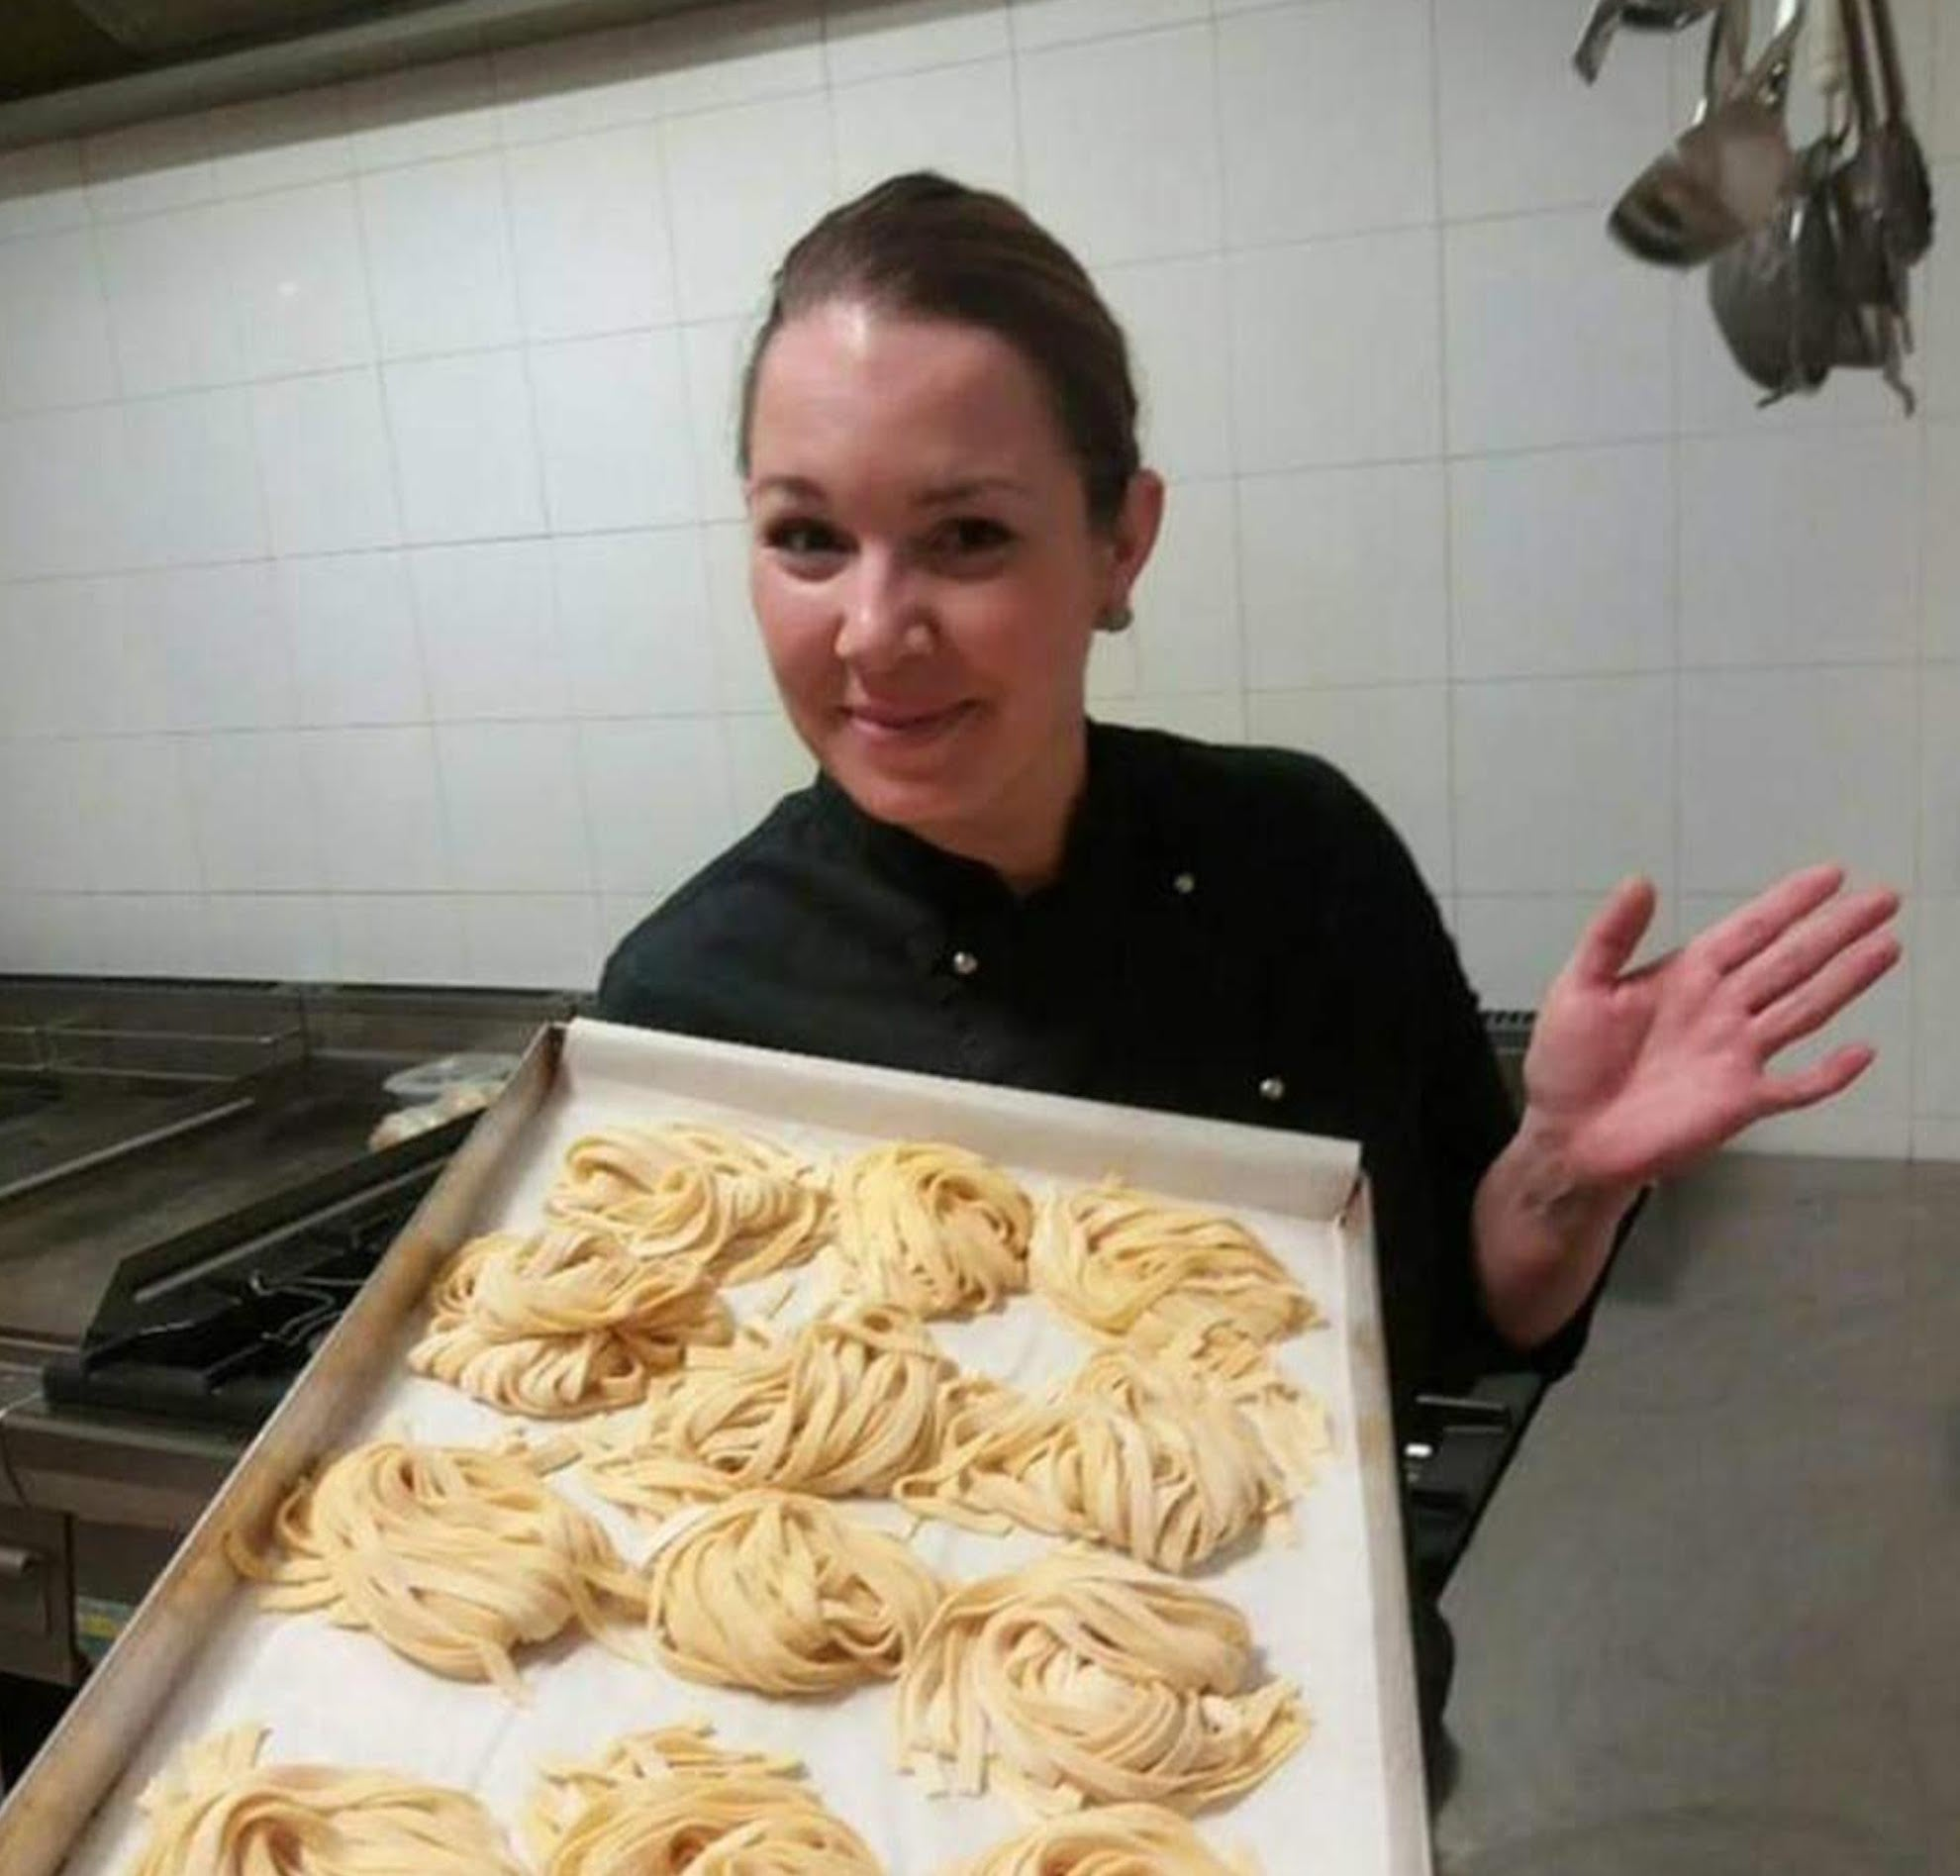 Kara private chef makes truffle sausages with best black truffle oil in Australia.